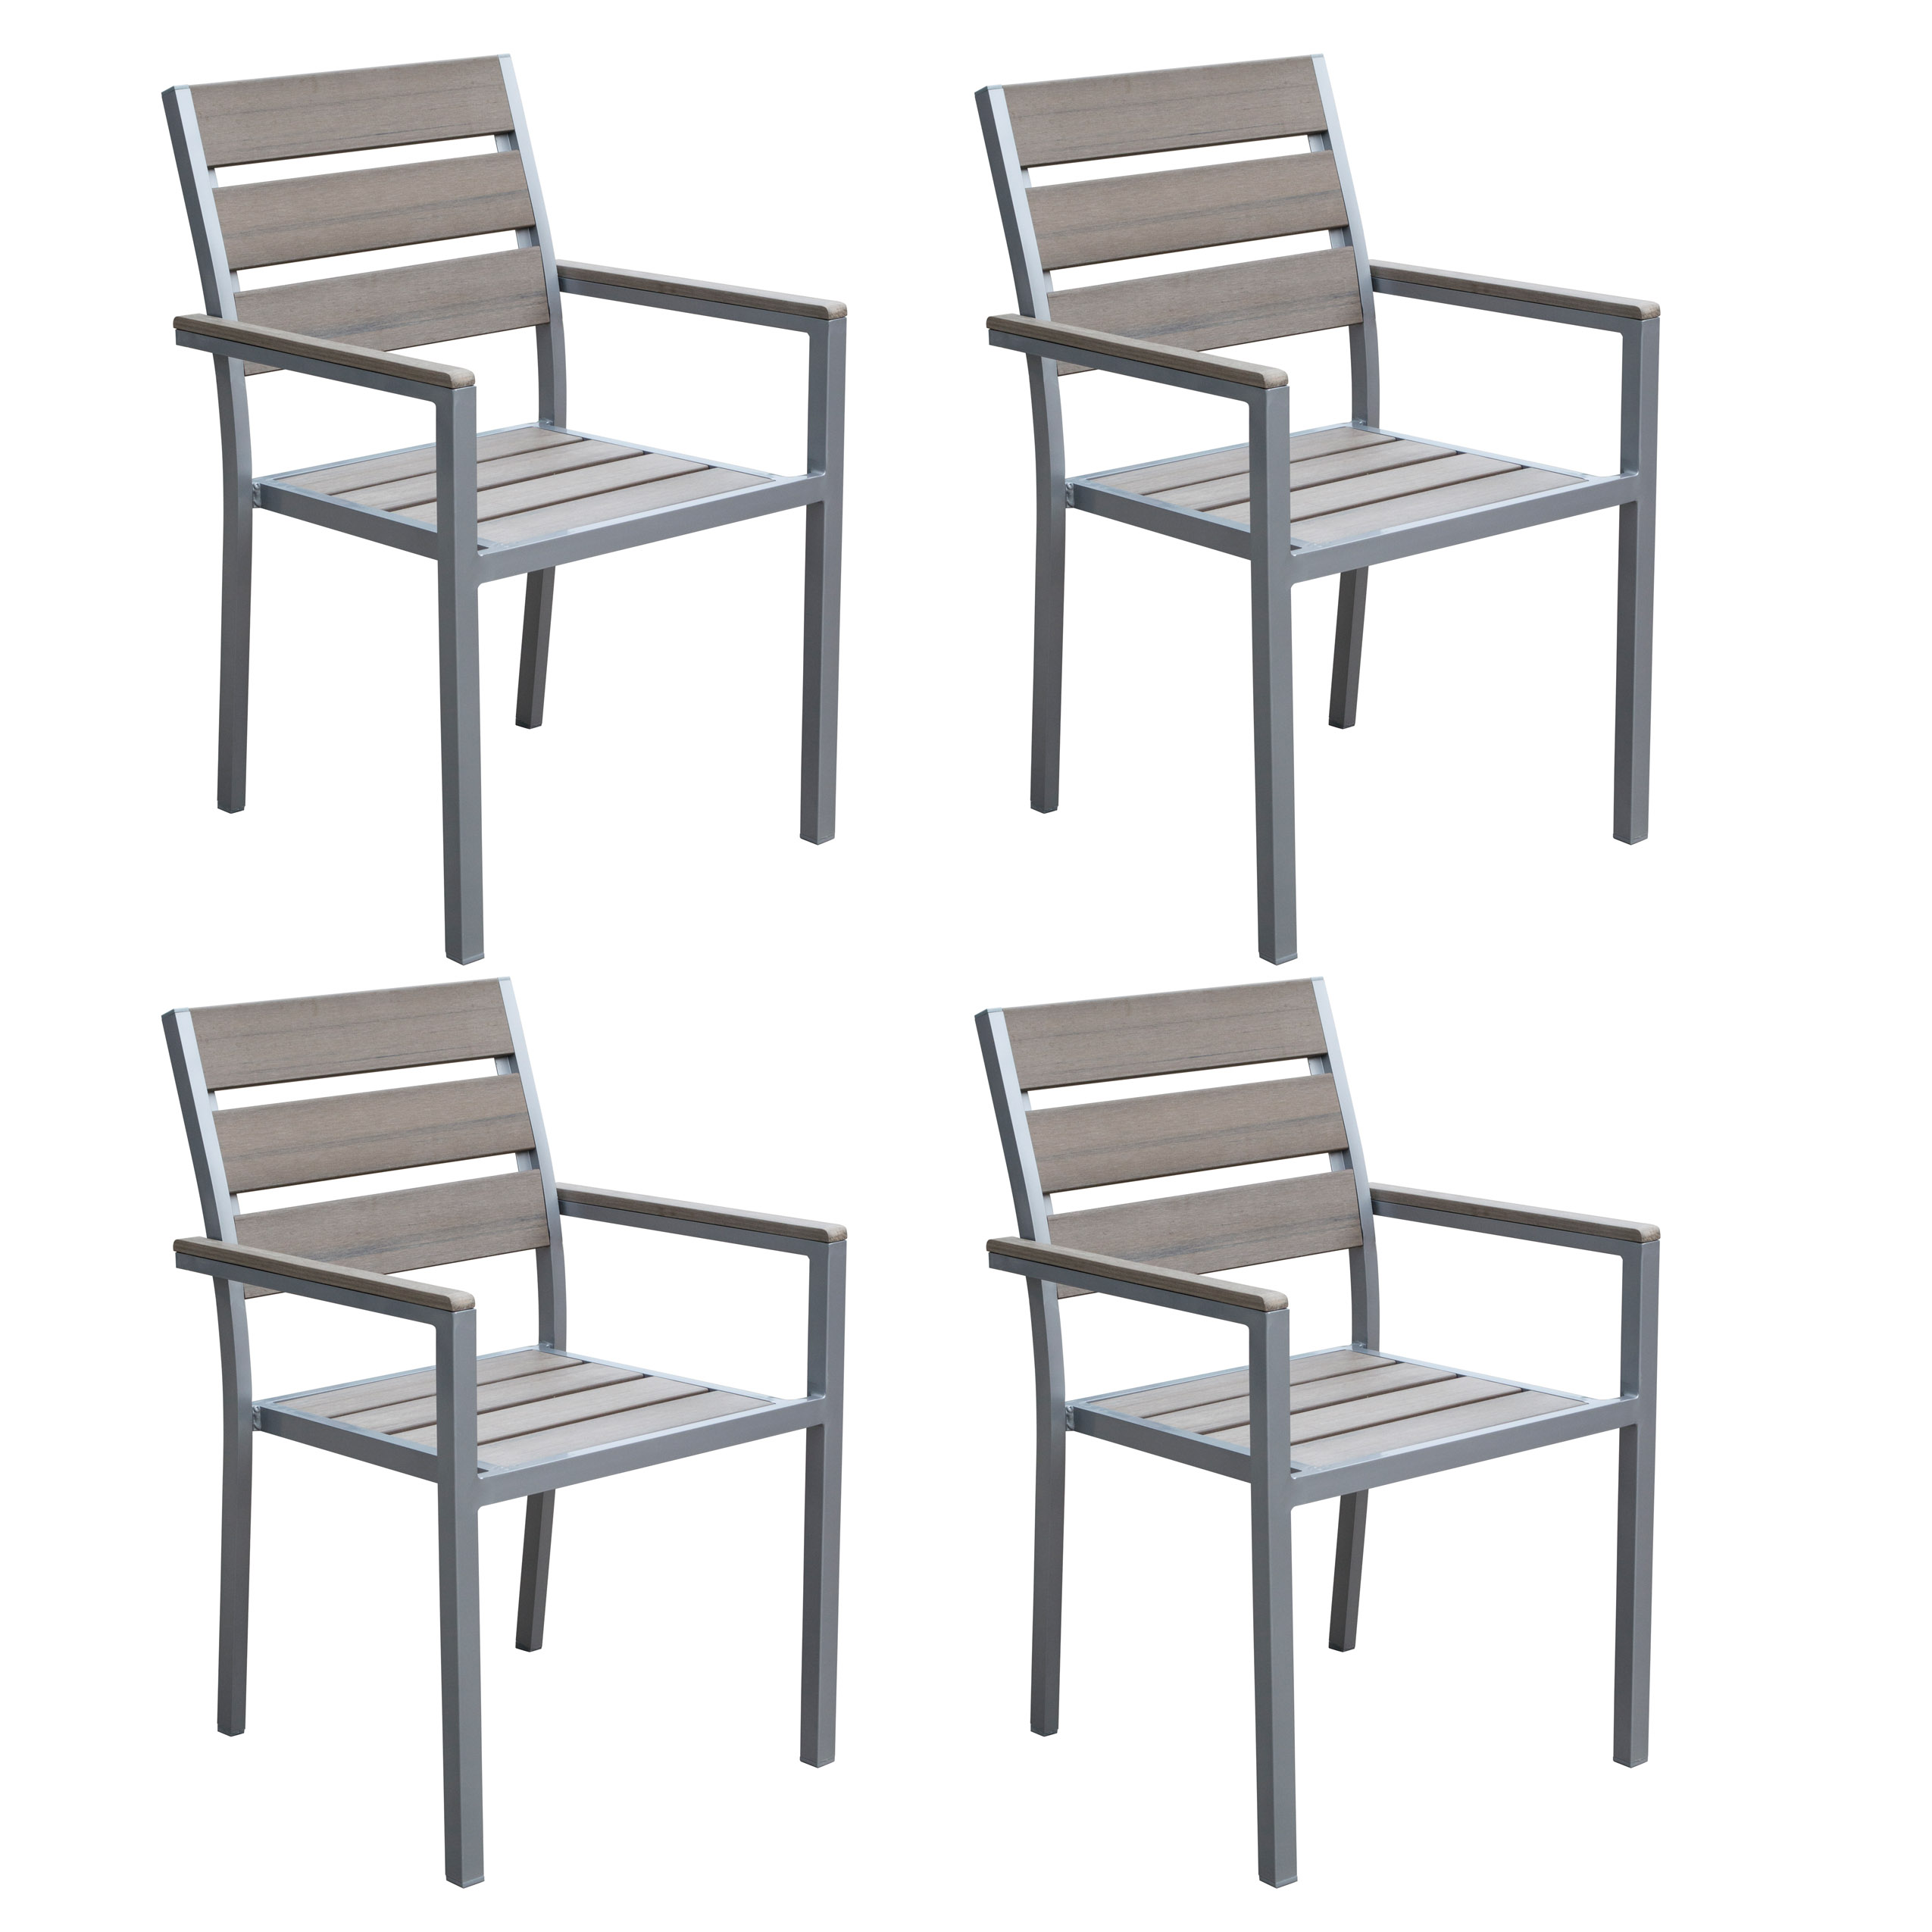 CorLiving Sun Bleached Grey Outdoor Dining Chairs, Set of 4